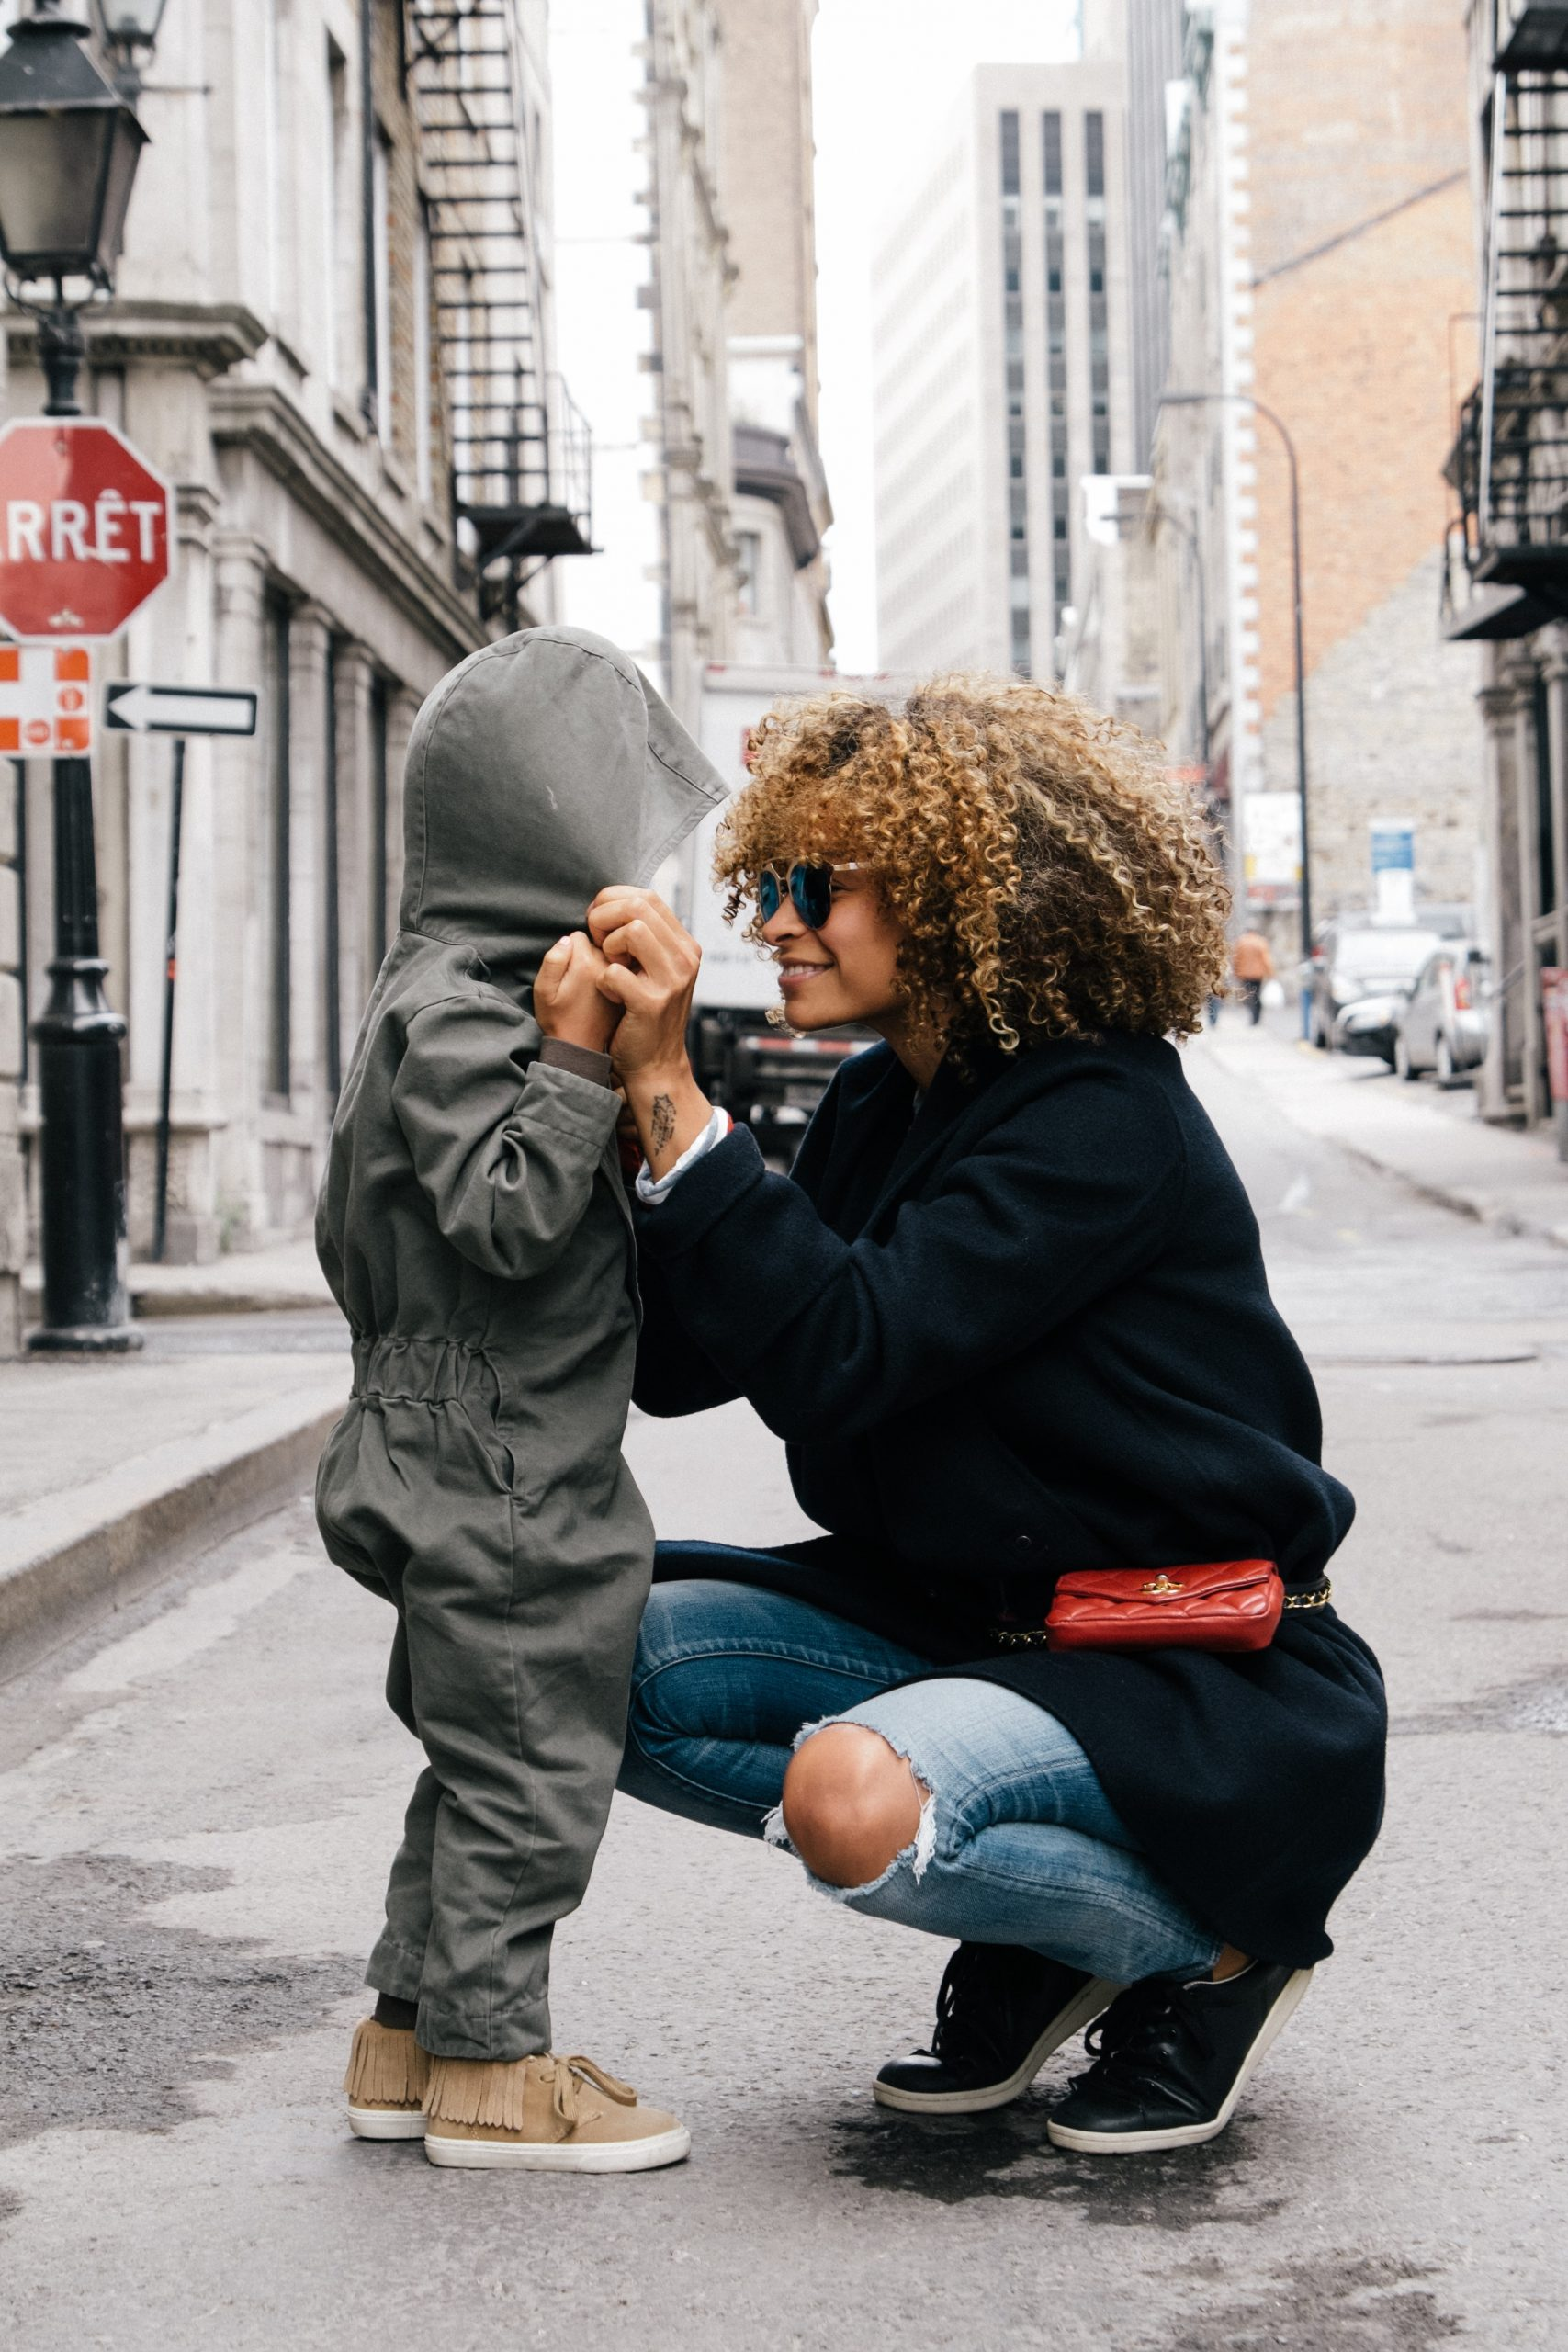 Ways to Comfort Kids When they are Upset